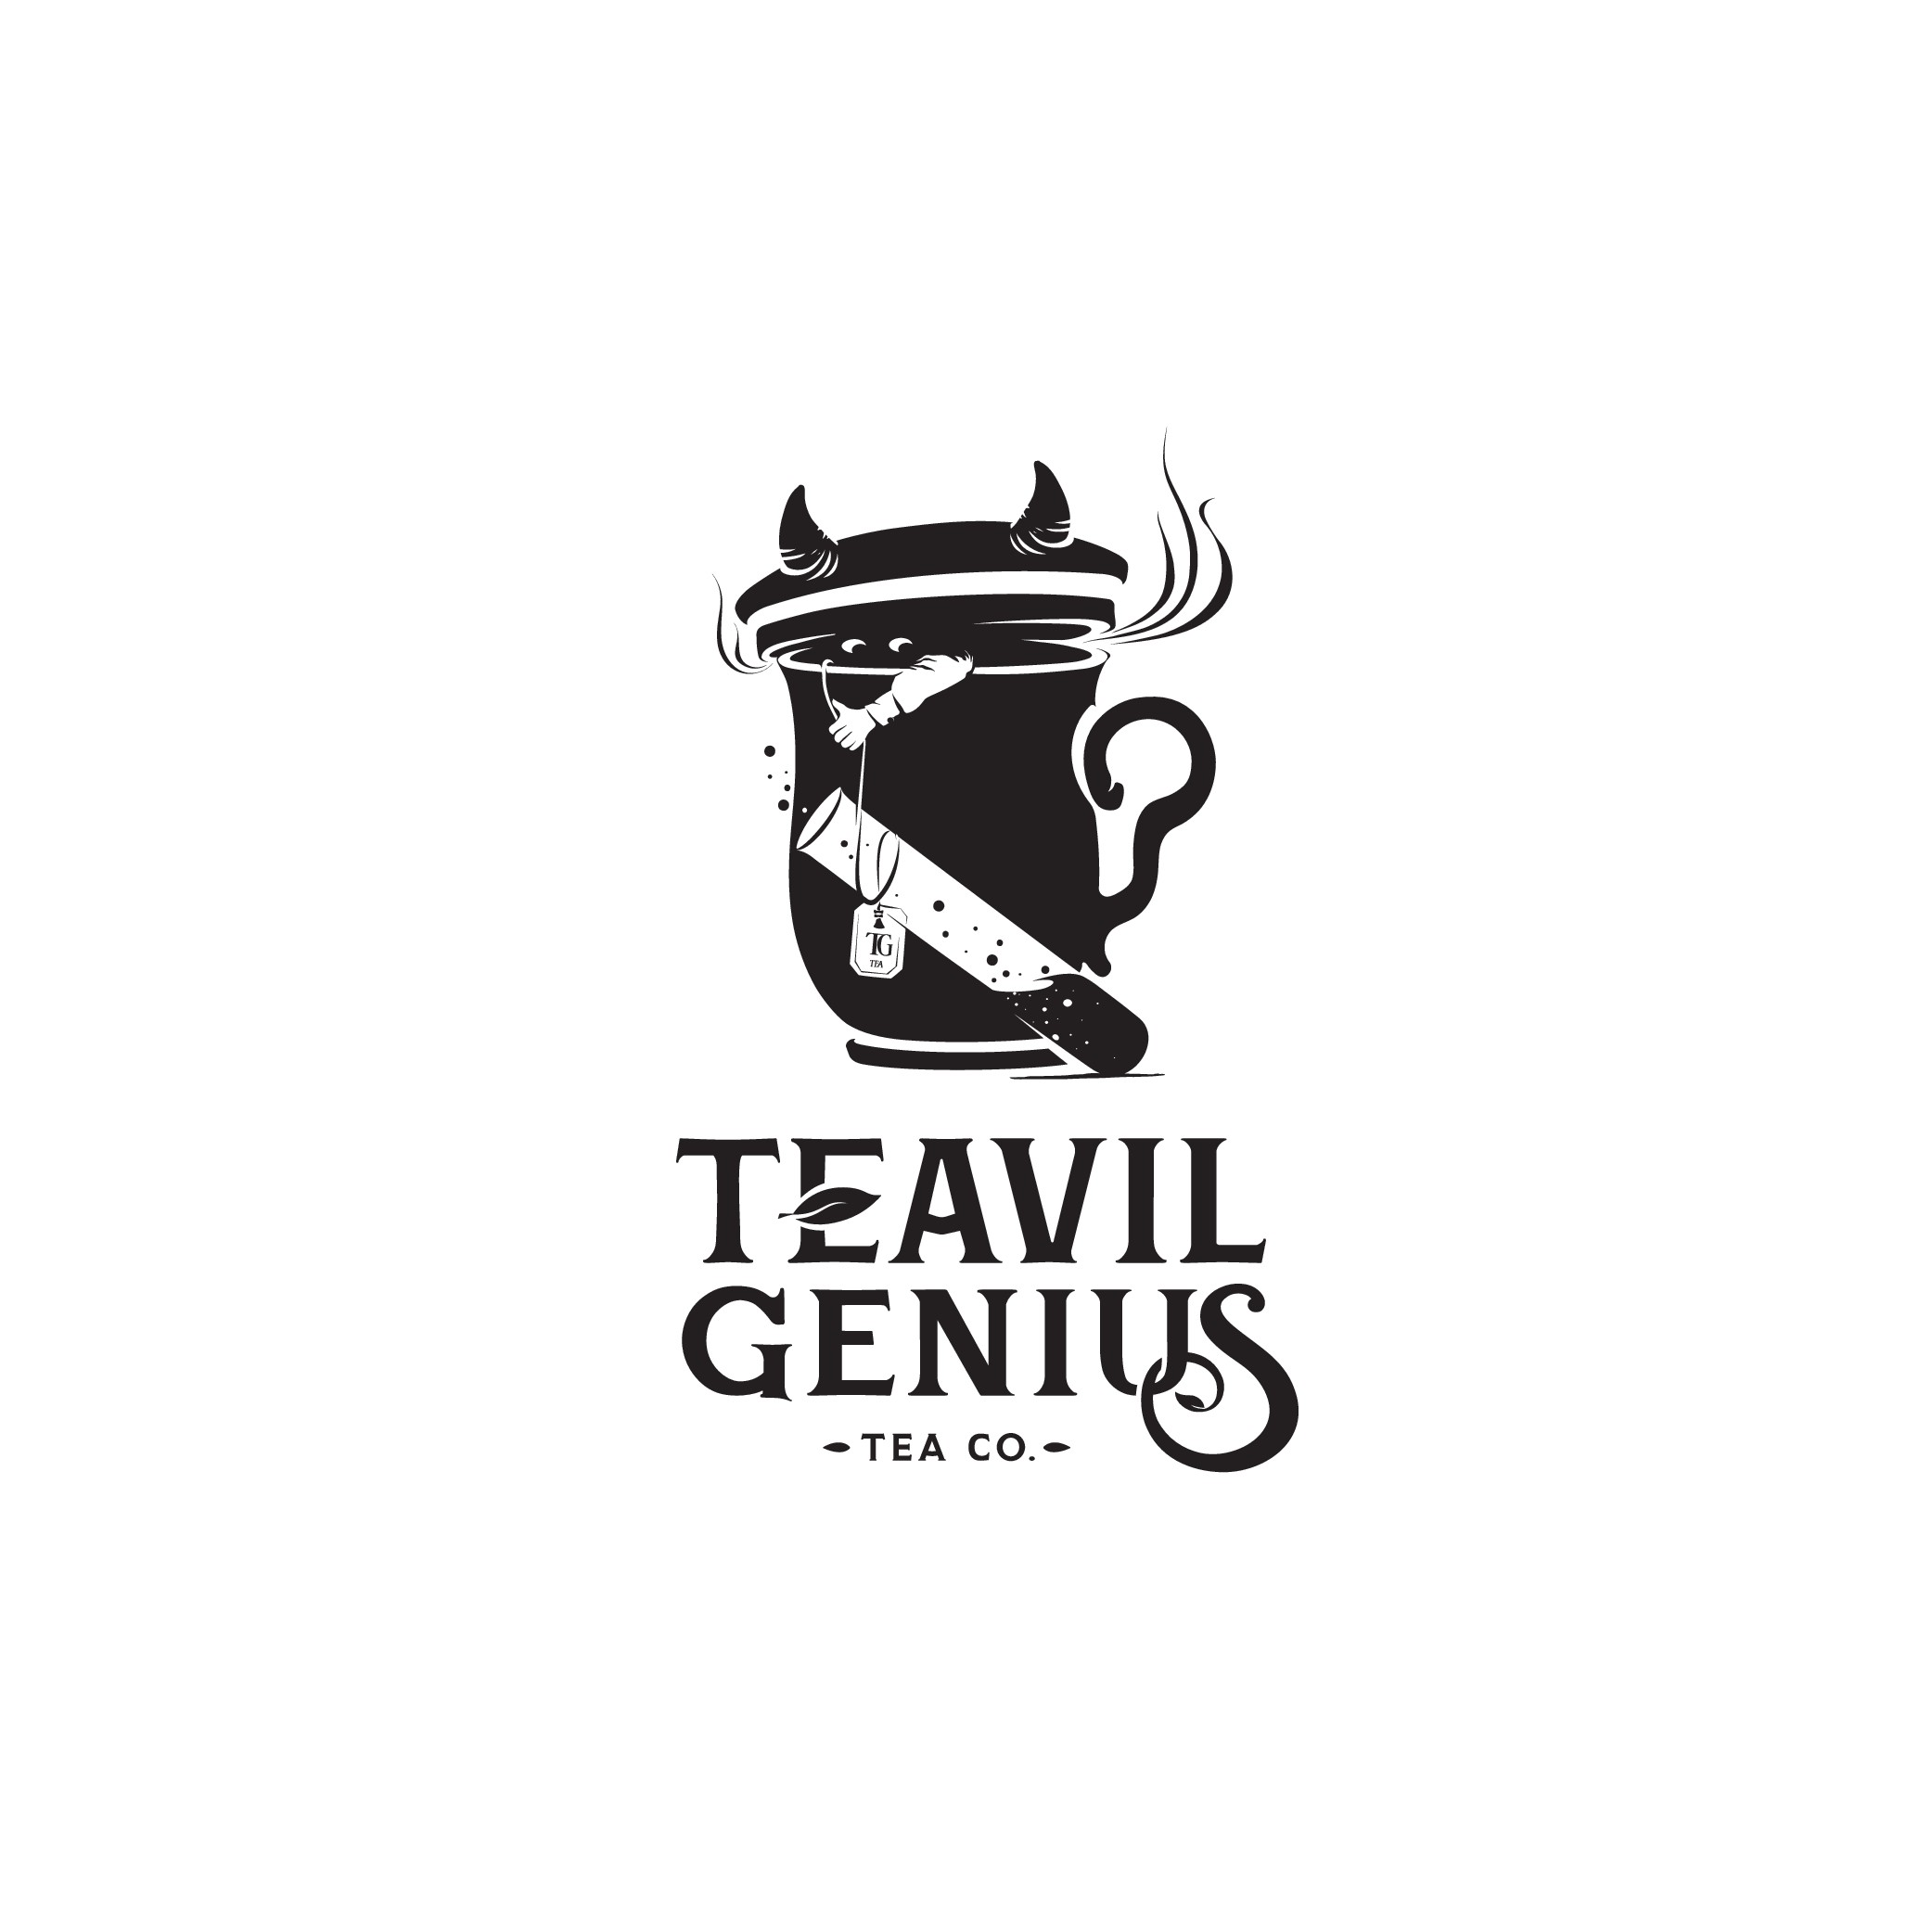 Teavil Genius, an offbeat tea company, needs a logo